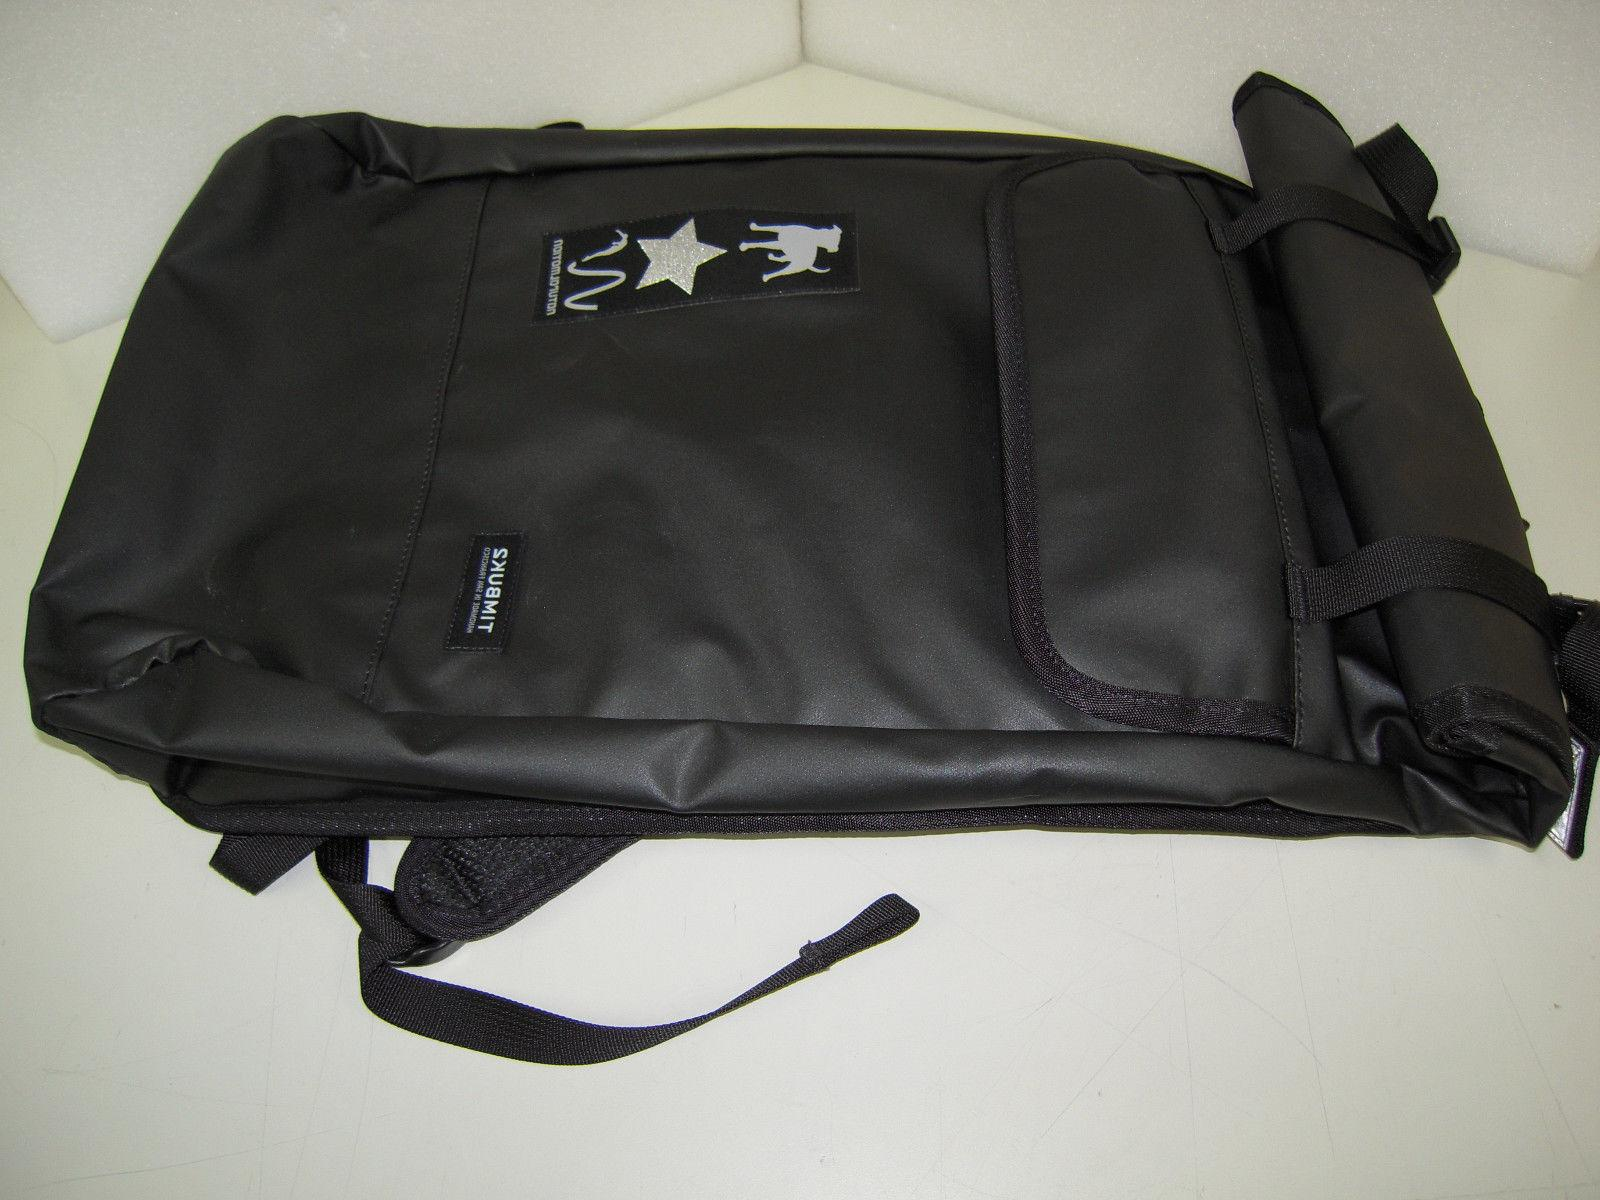 Timbuk2 Custom Backpack